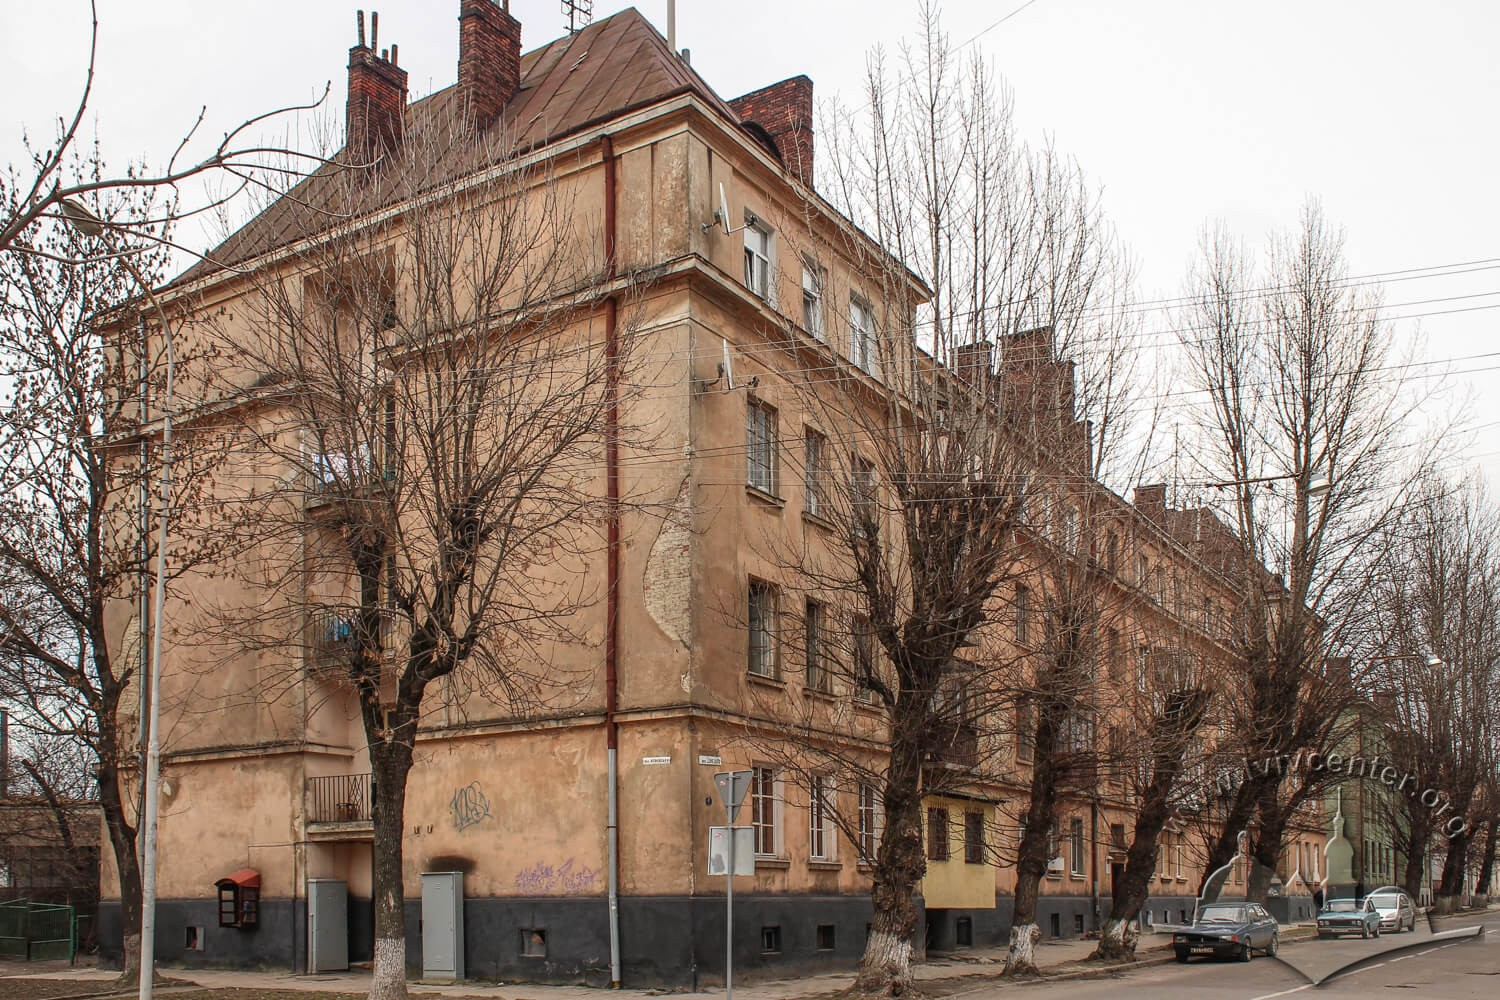 Vul. Donetska, 1. General view of the building from vul. Zhovkivska/Photo courtesy of Olha Zarechnyuk, 2016